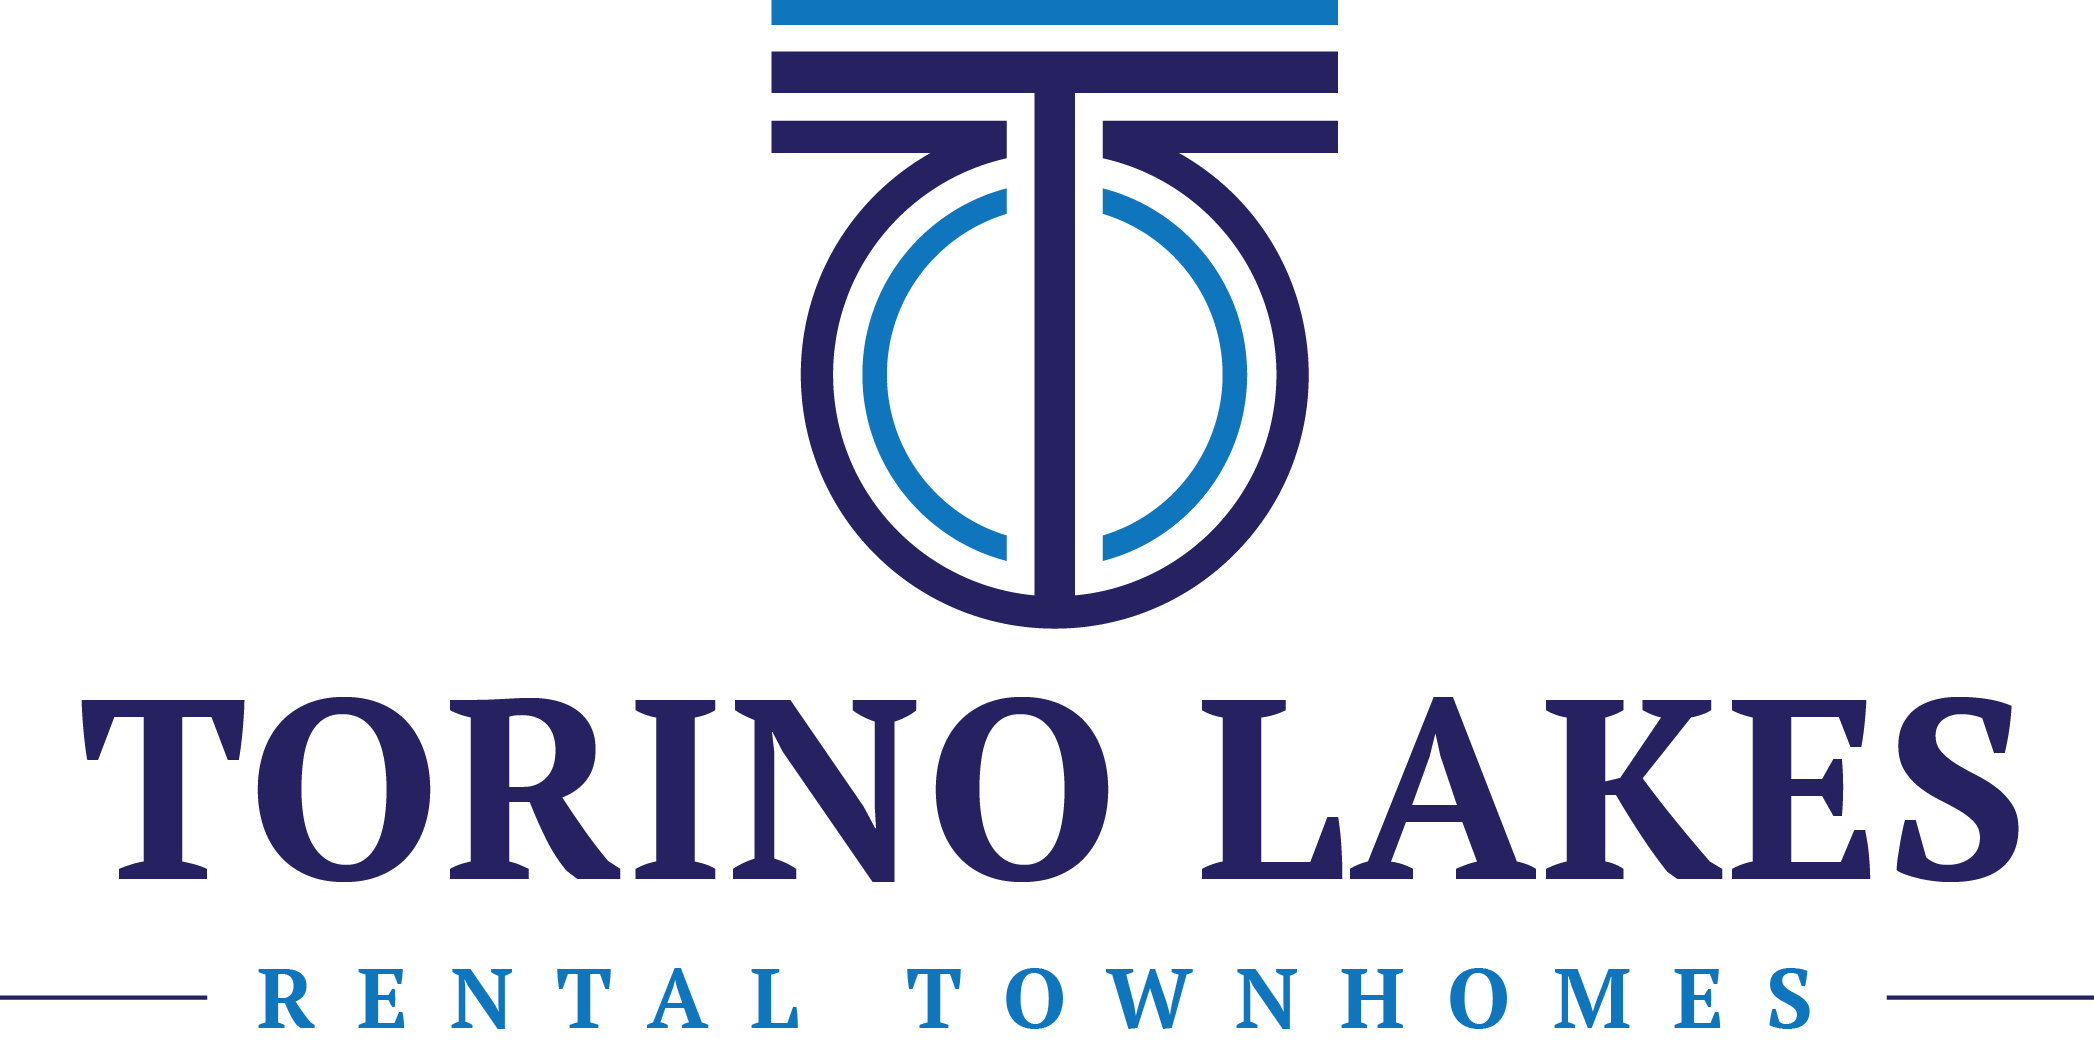 Torino lakes rental townhomes port st lucie fl welcome for Logos space torino